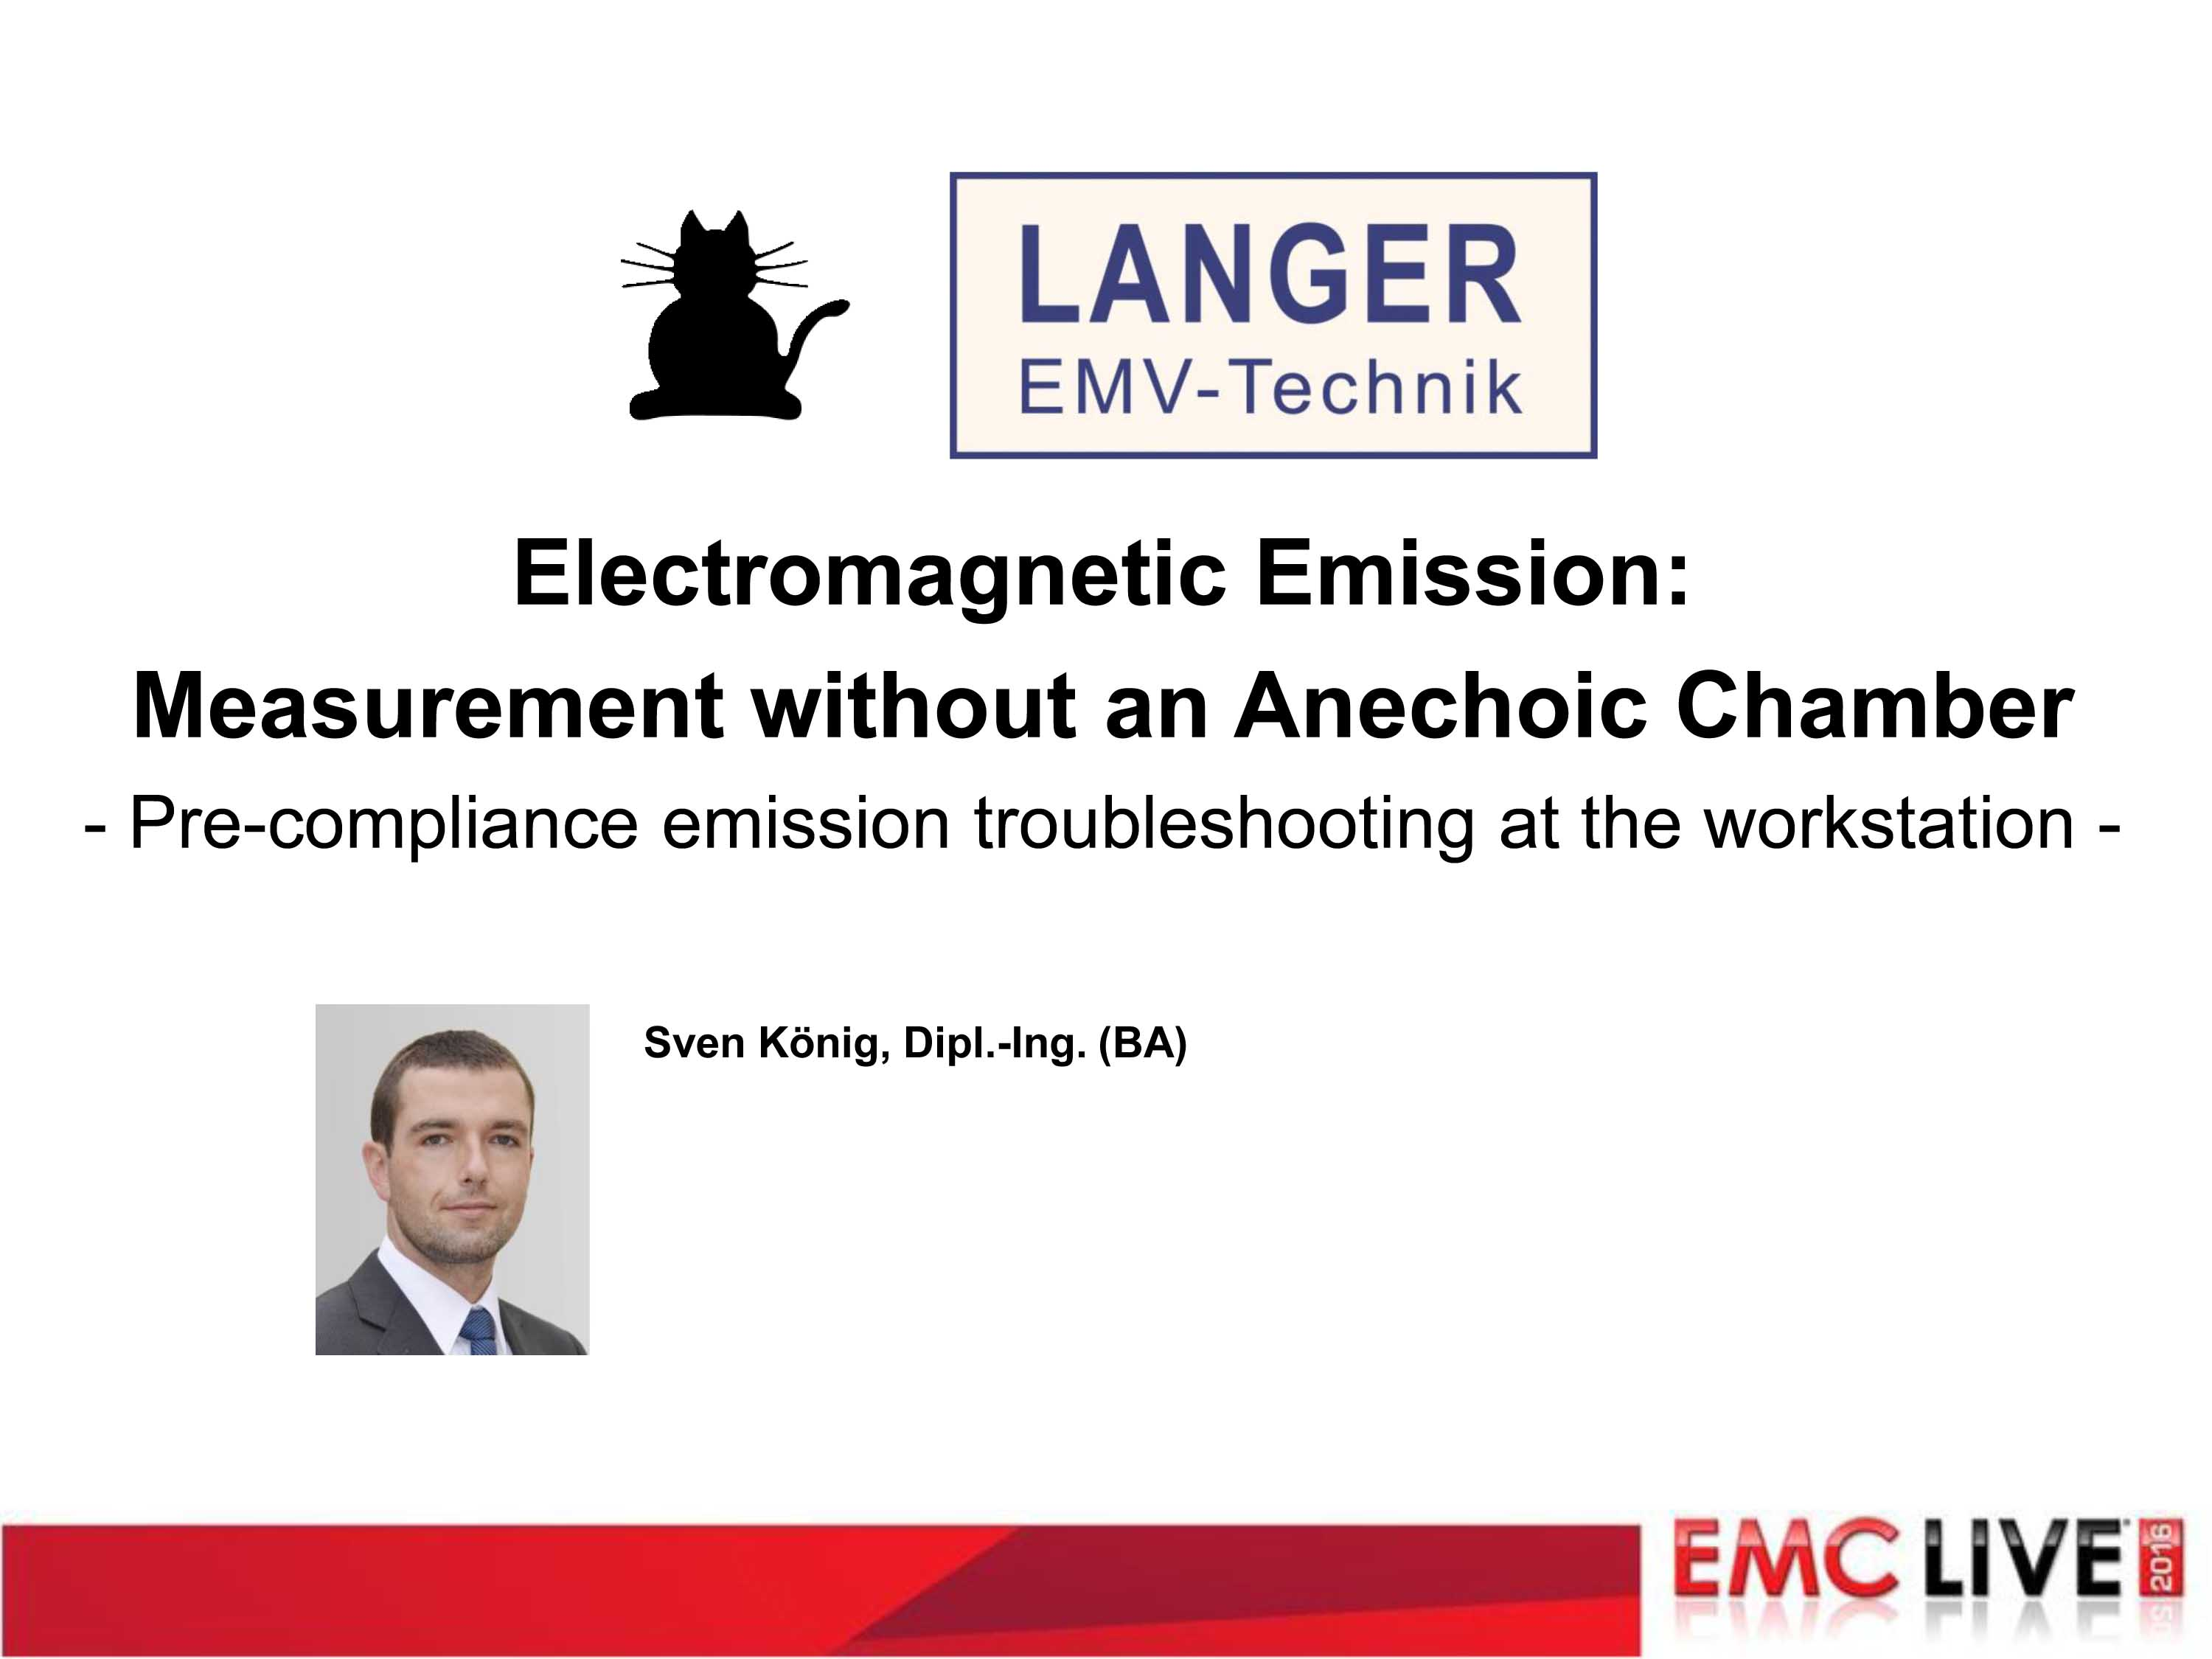 Electromagnetic Emissions Measurement Without an Anechoic Chamber